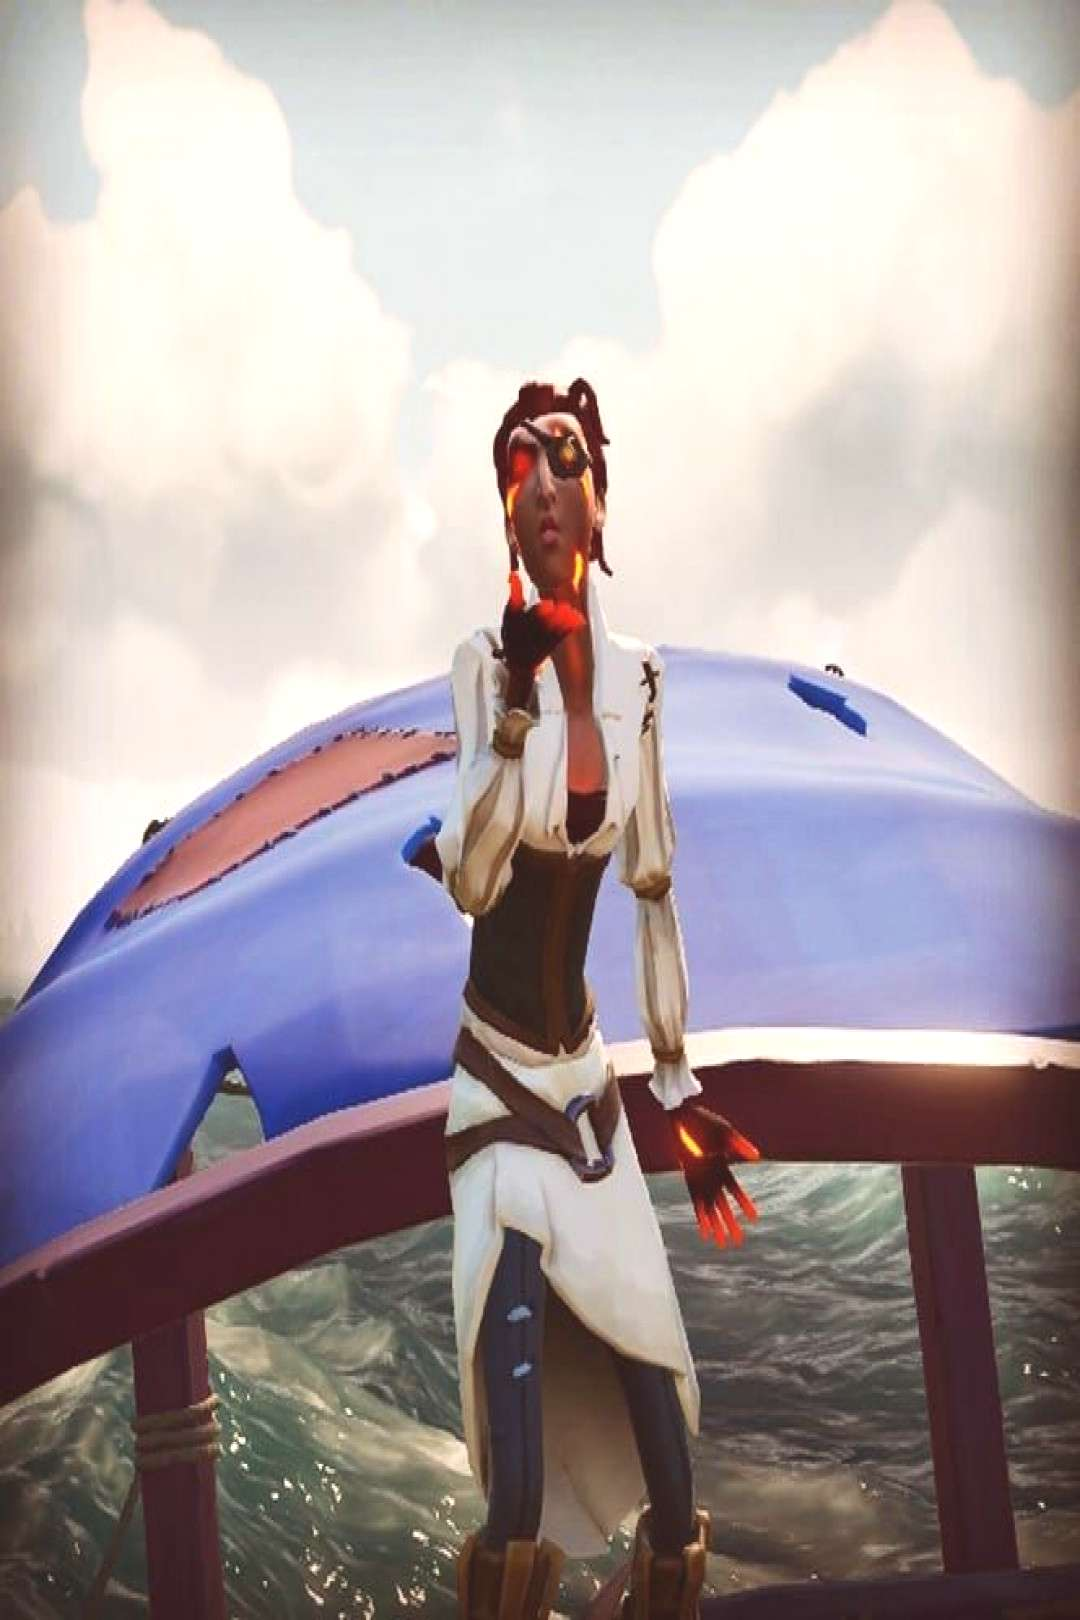 Big pirate kisses on your voyages today ???